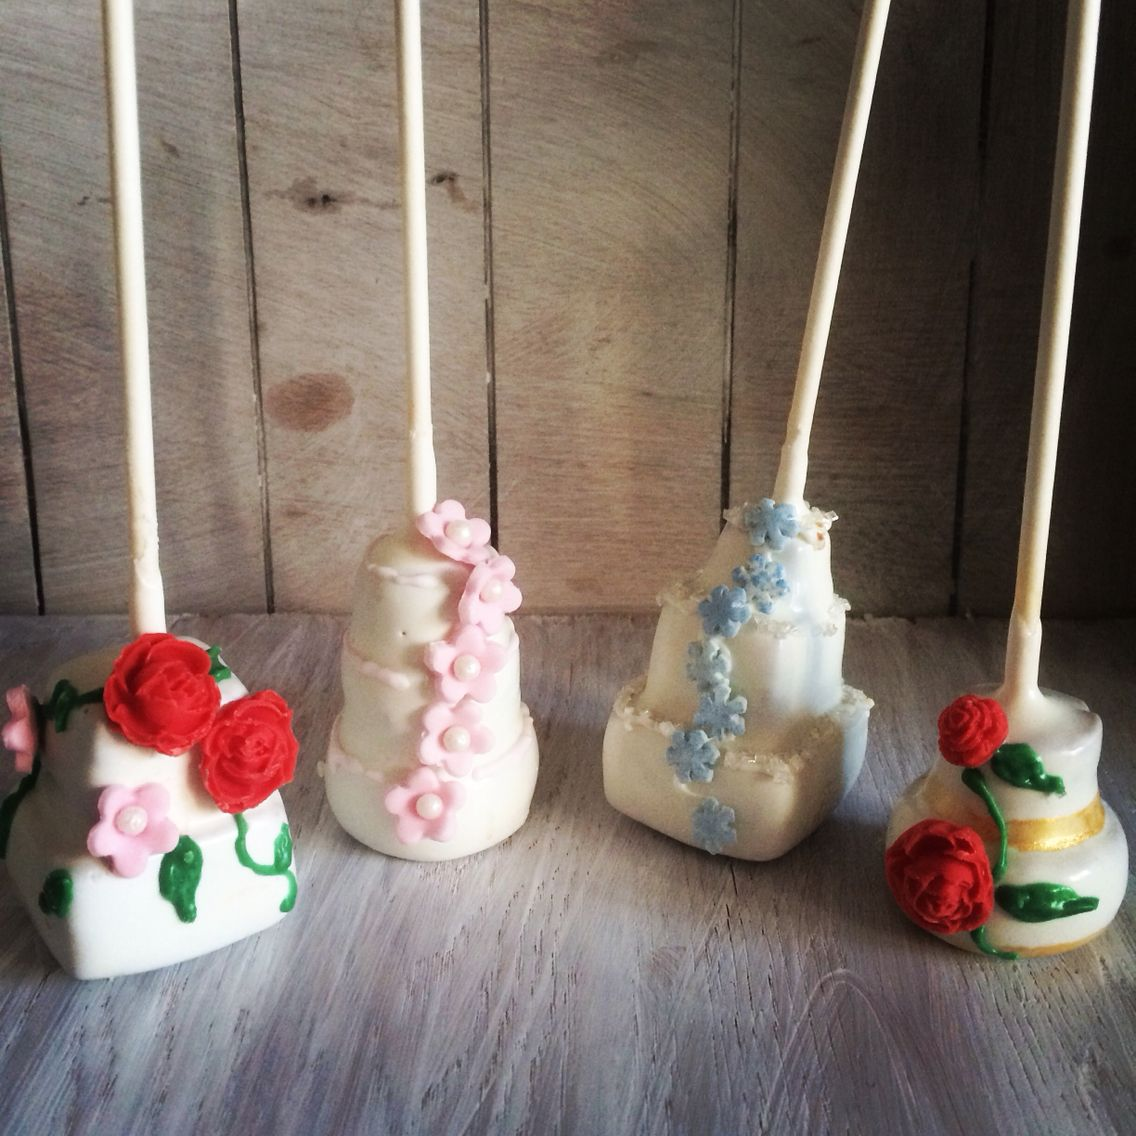 Love these cute little cake pop wedding cakes available in any